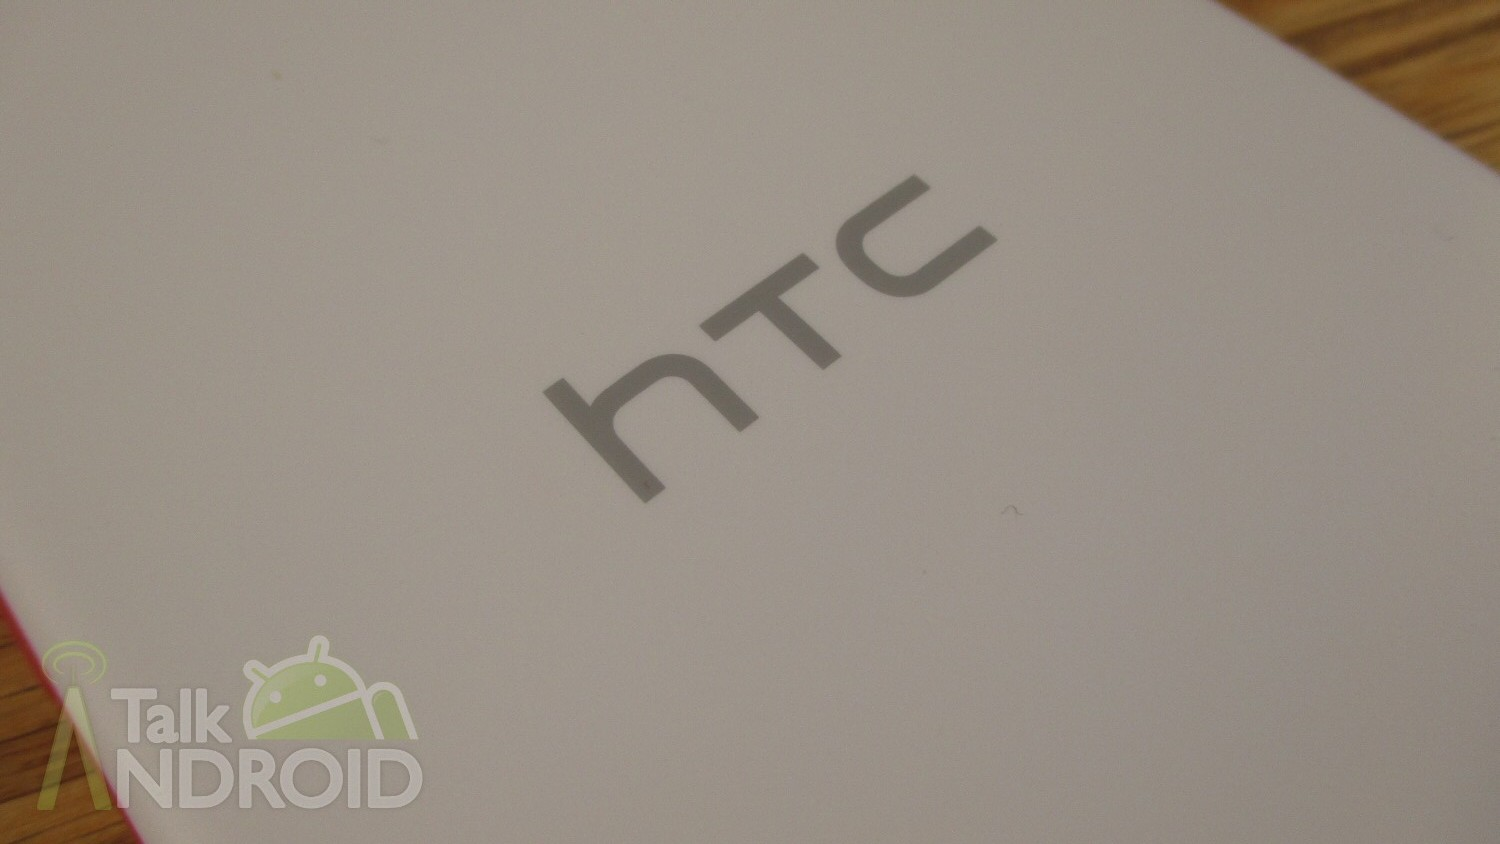 HTC One M9 obtains Wi-Fi and NFC certifications